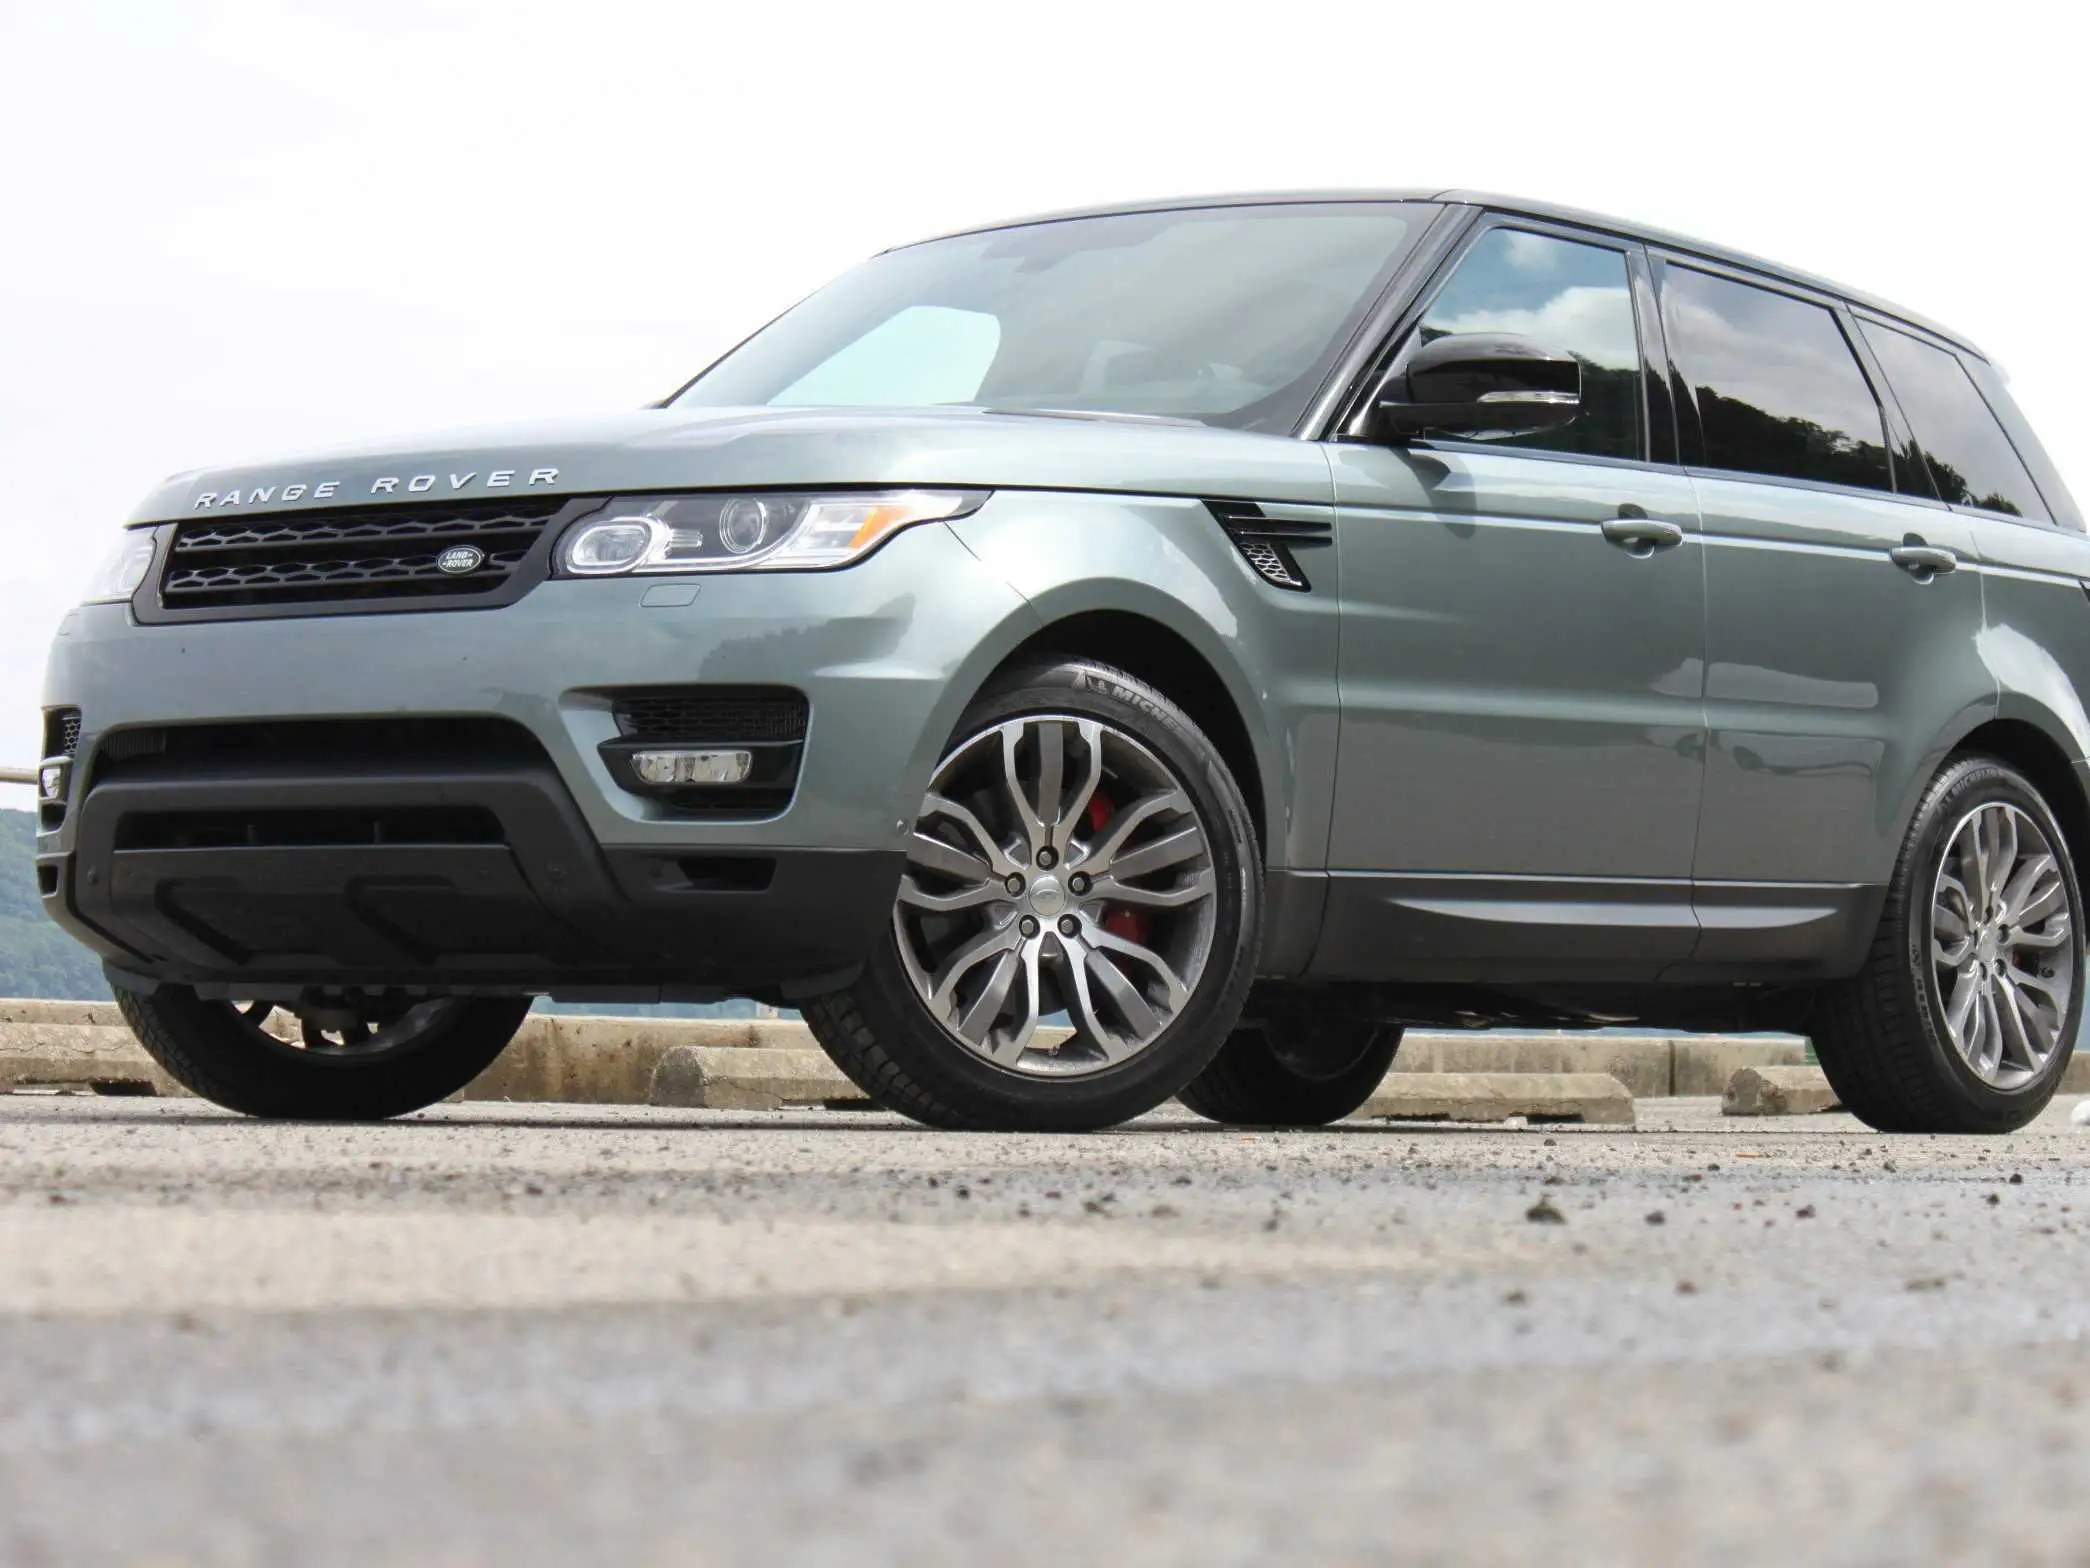 Range Rover Sport V8 Supercharged Review Business Insider